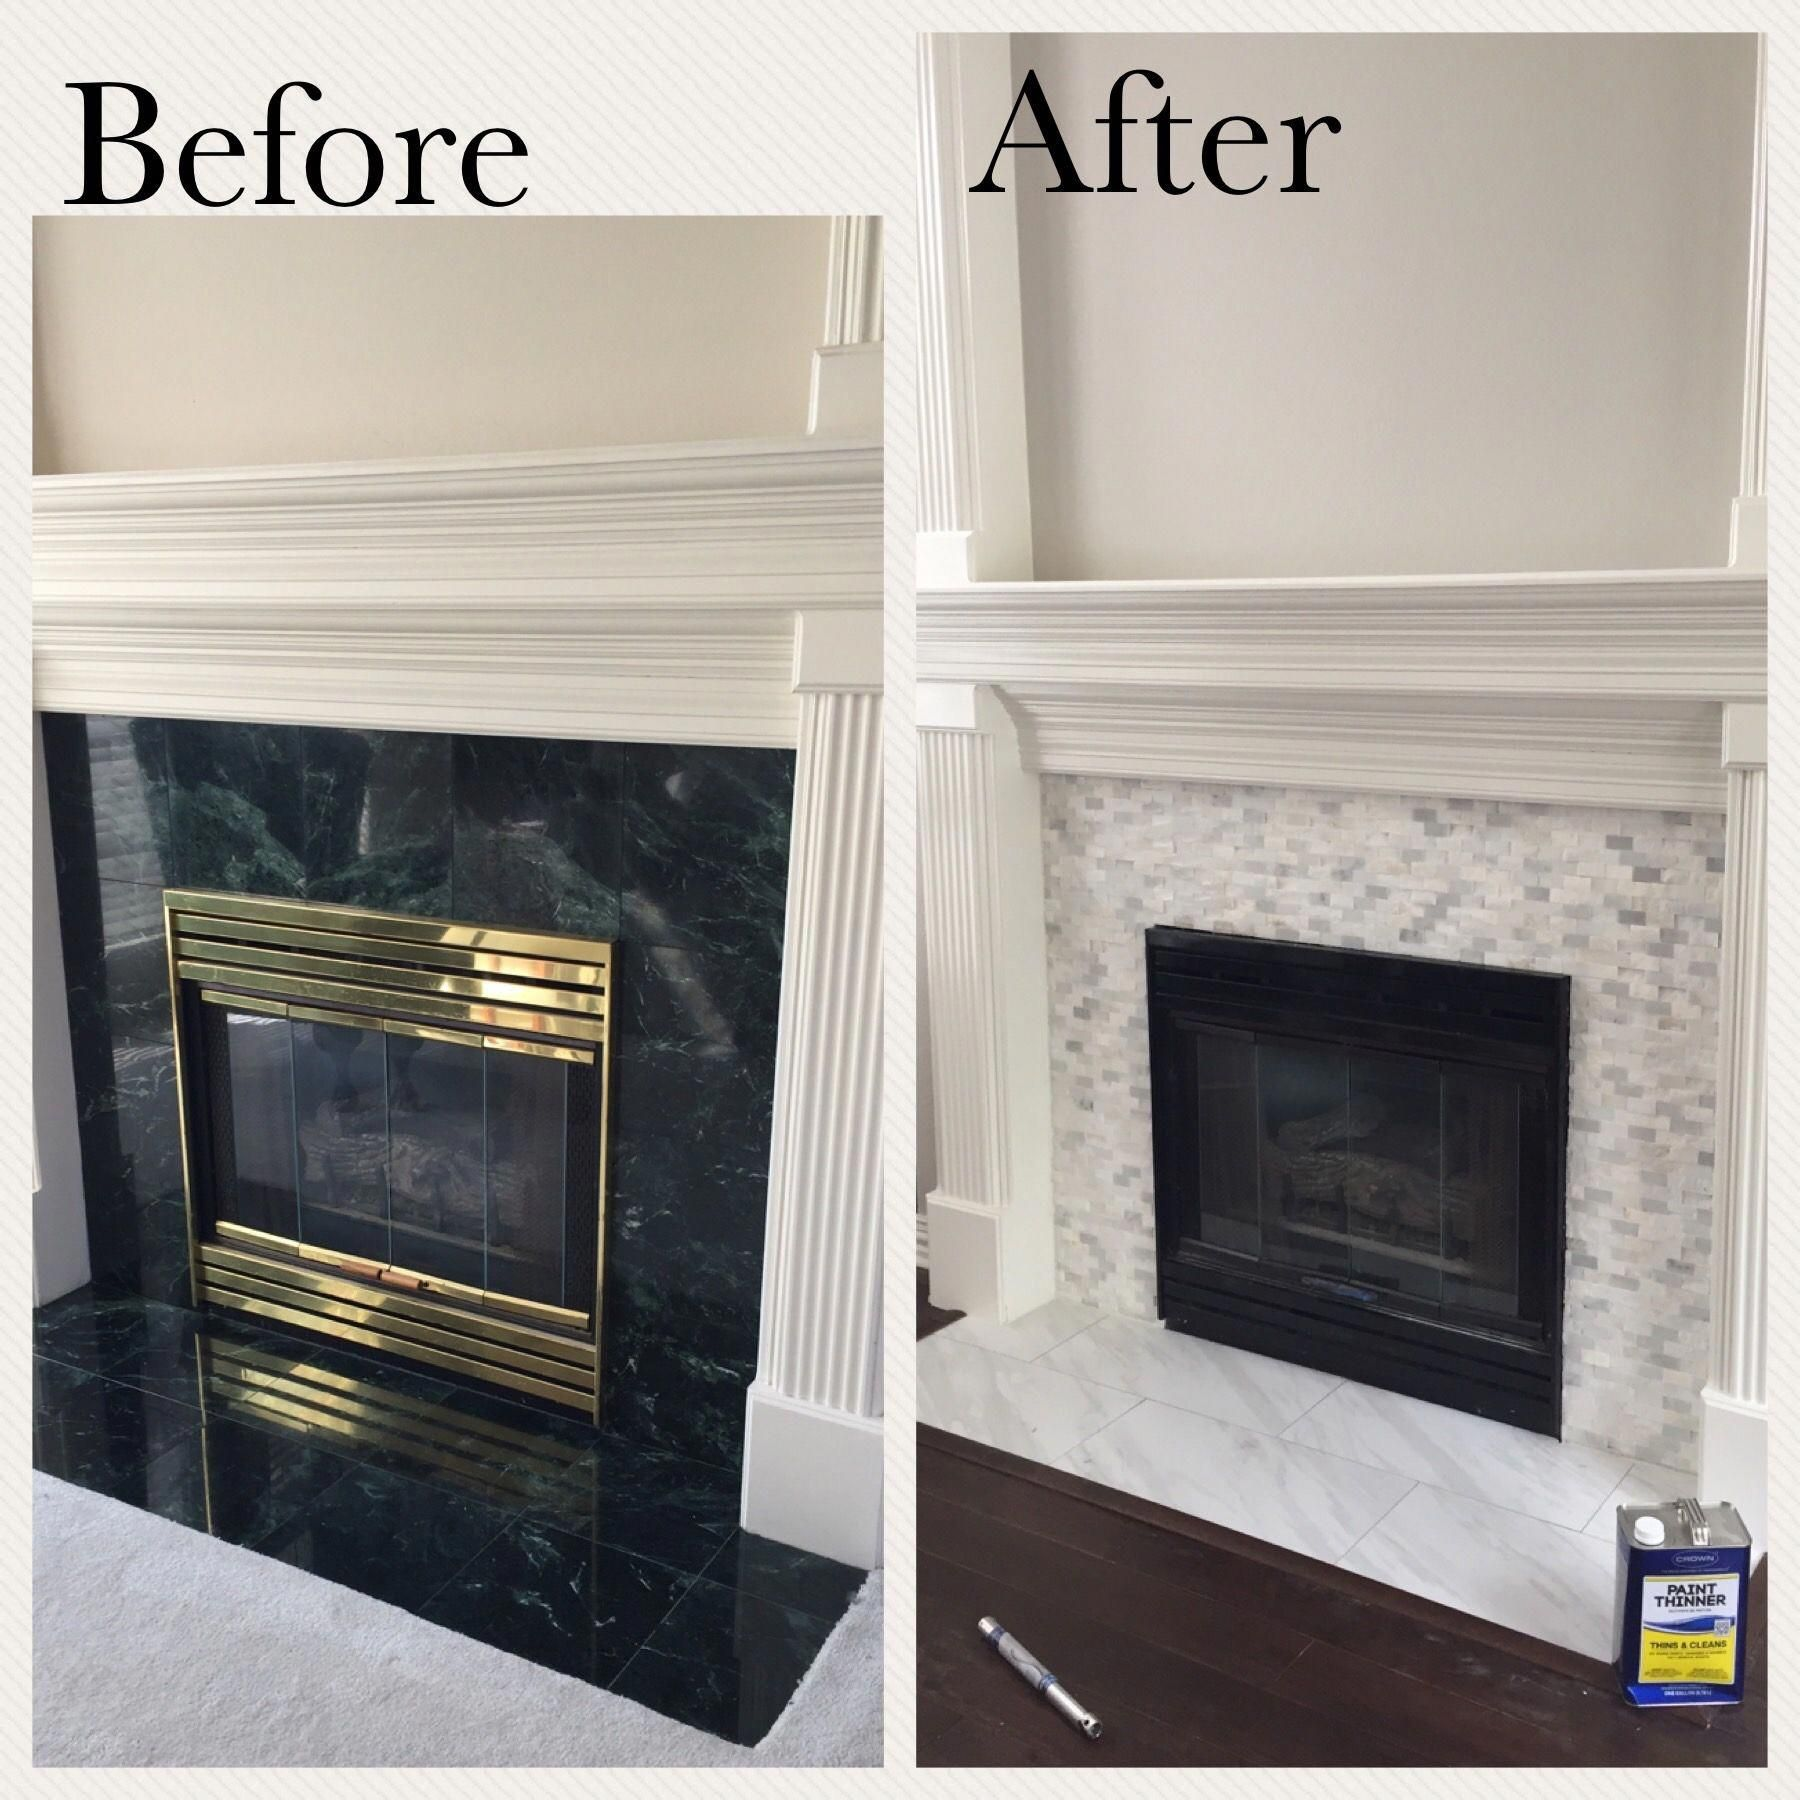 Fireplace updated by painting brass black and replacing